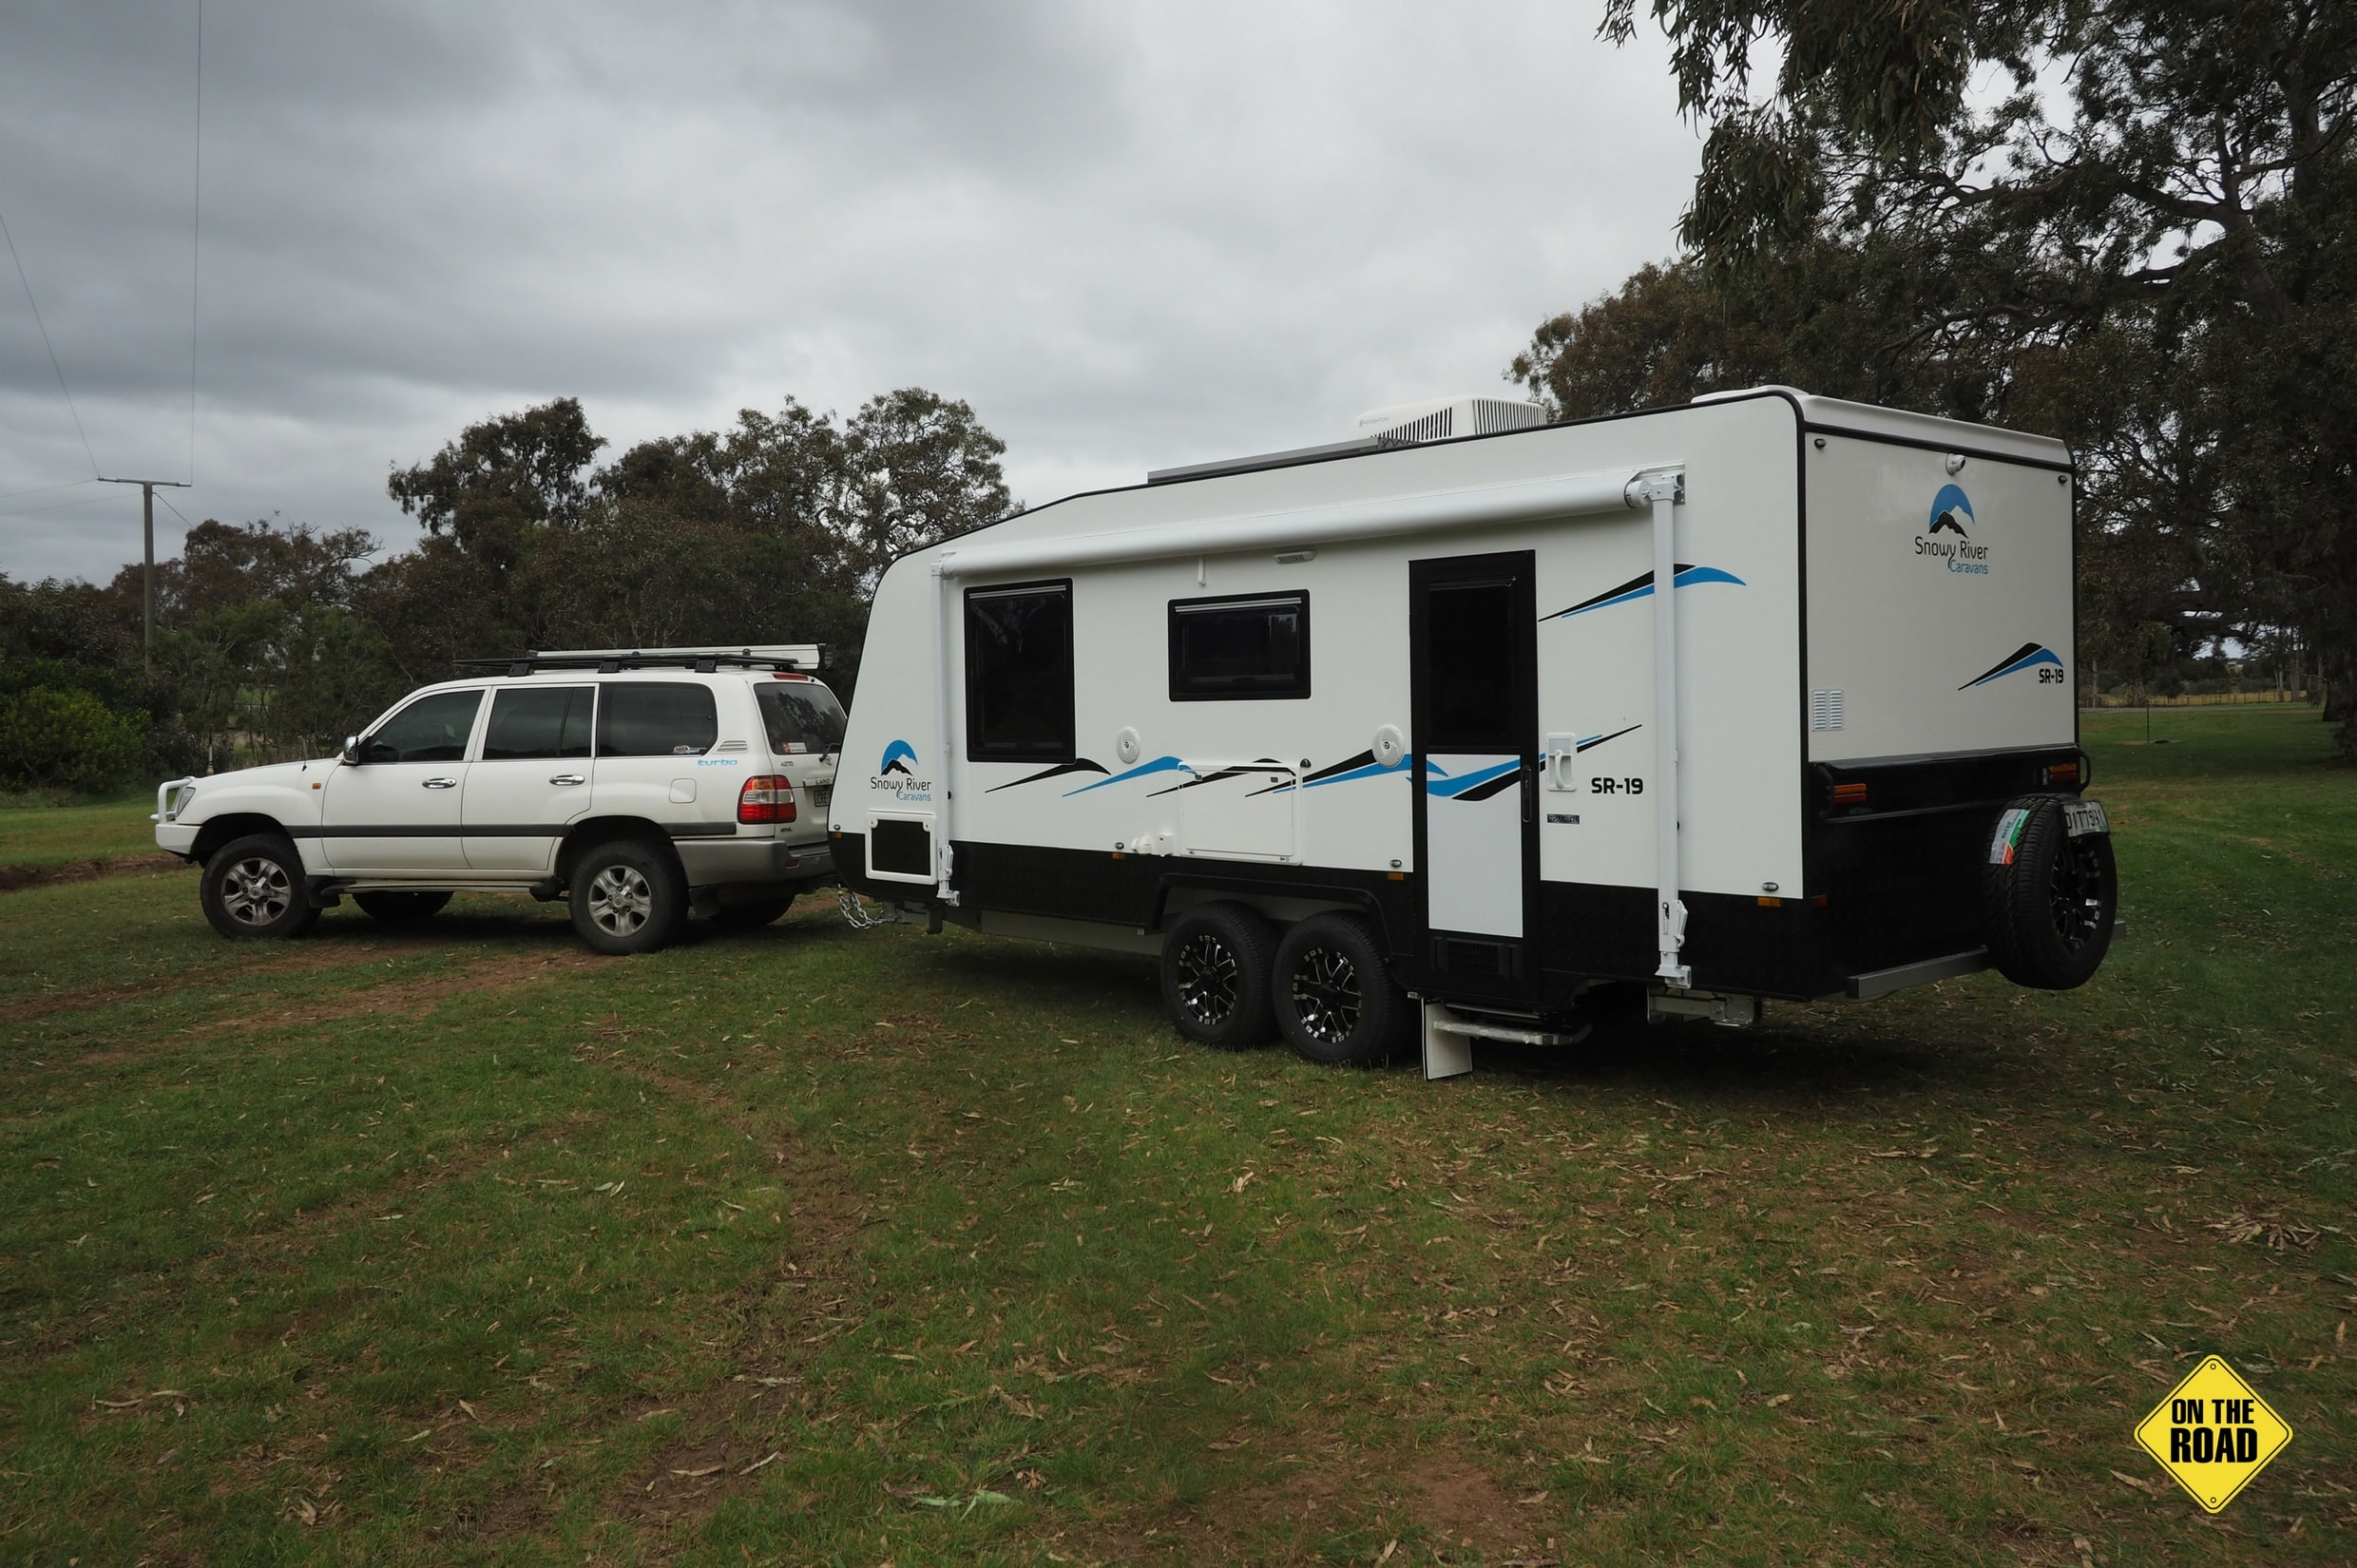 The Van from Snowy River